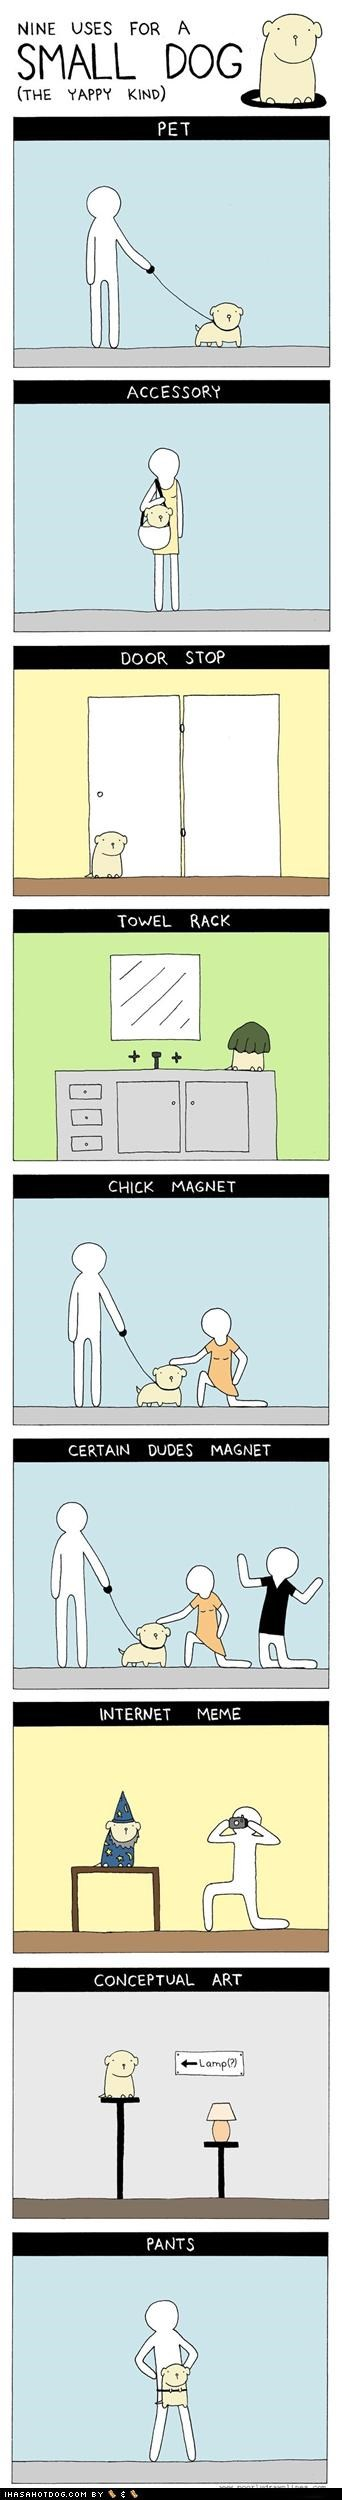 accessory,certain dudes magnet,chick magnet,comic,conceptual art,dogs,door stop,Hall of Fame,ideas,meme,memedogs,nine,pants,pet,small,towel rack,uses